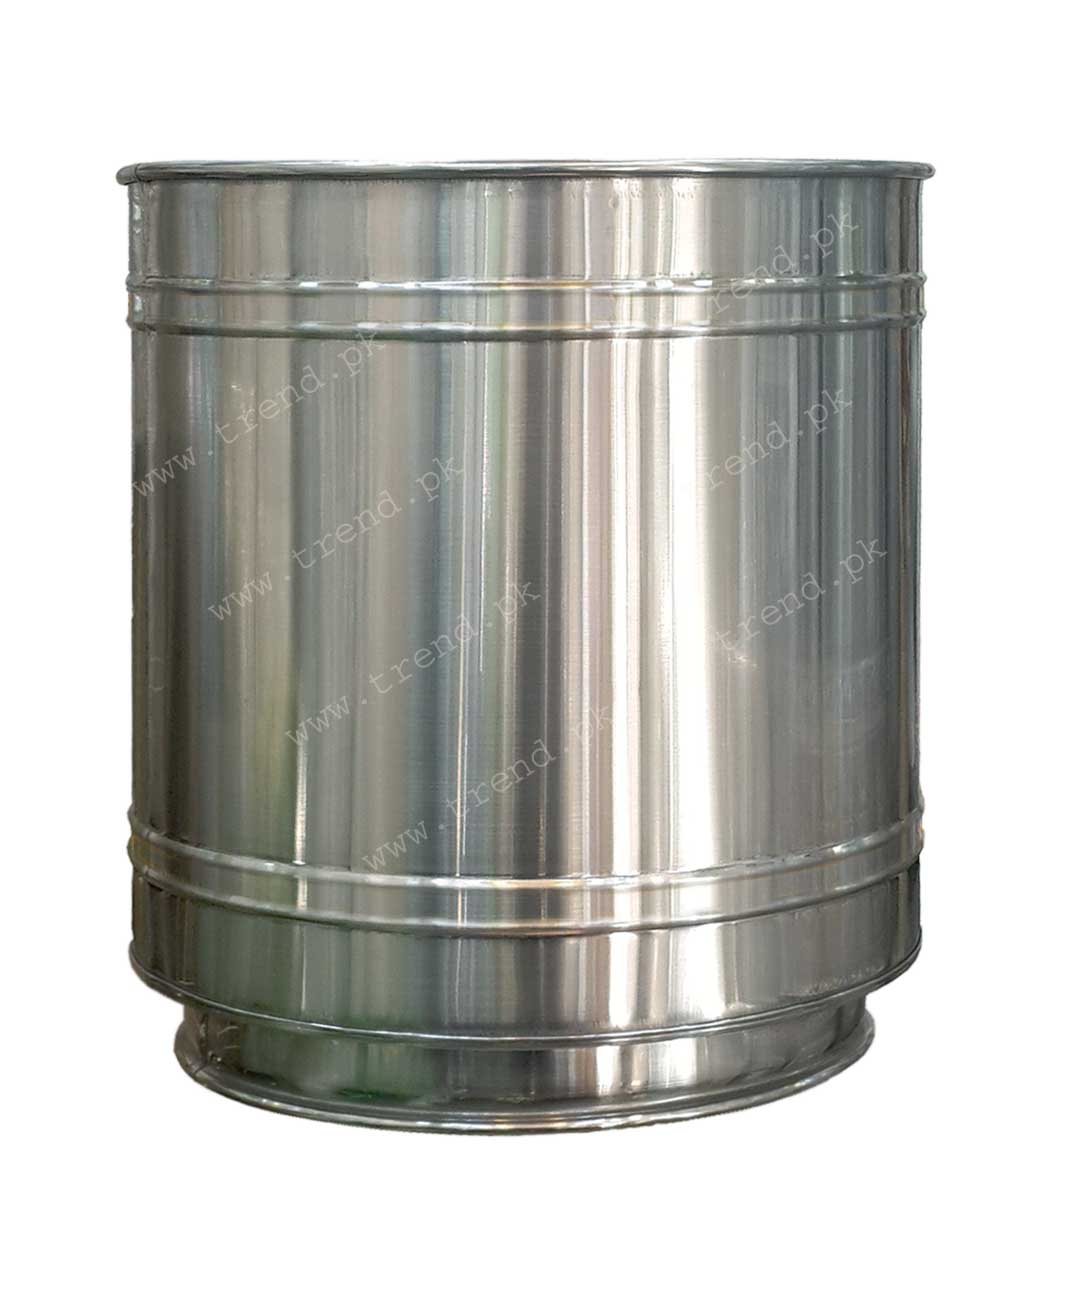 plant-pot-planter-stainless-steel-non-magnet-grooved-1